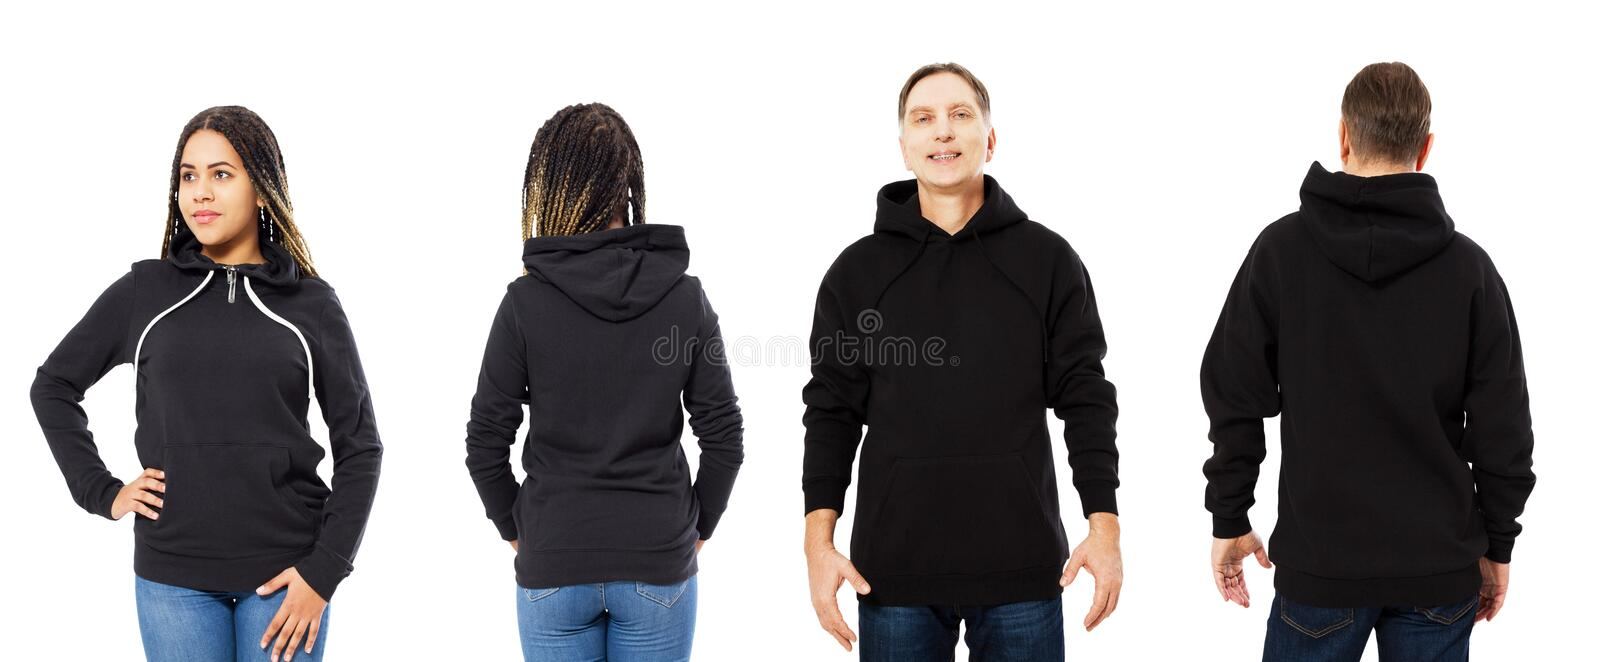 Front back and rear black sweatshirt view. Beautiful black woman and man in template clothes for print and copy space isolated on royalty free stock image